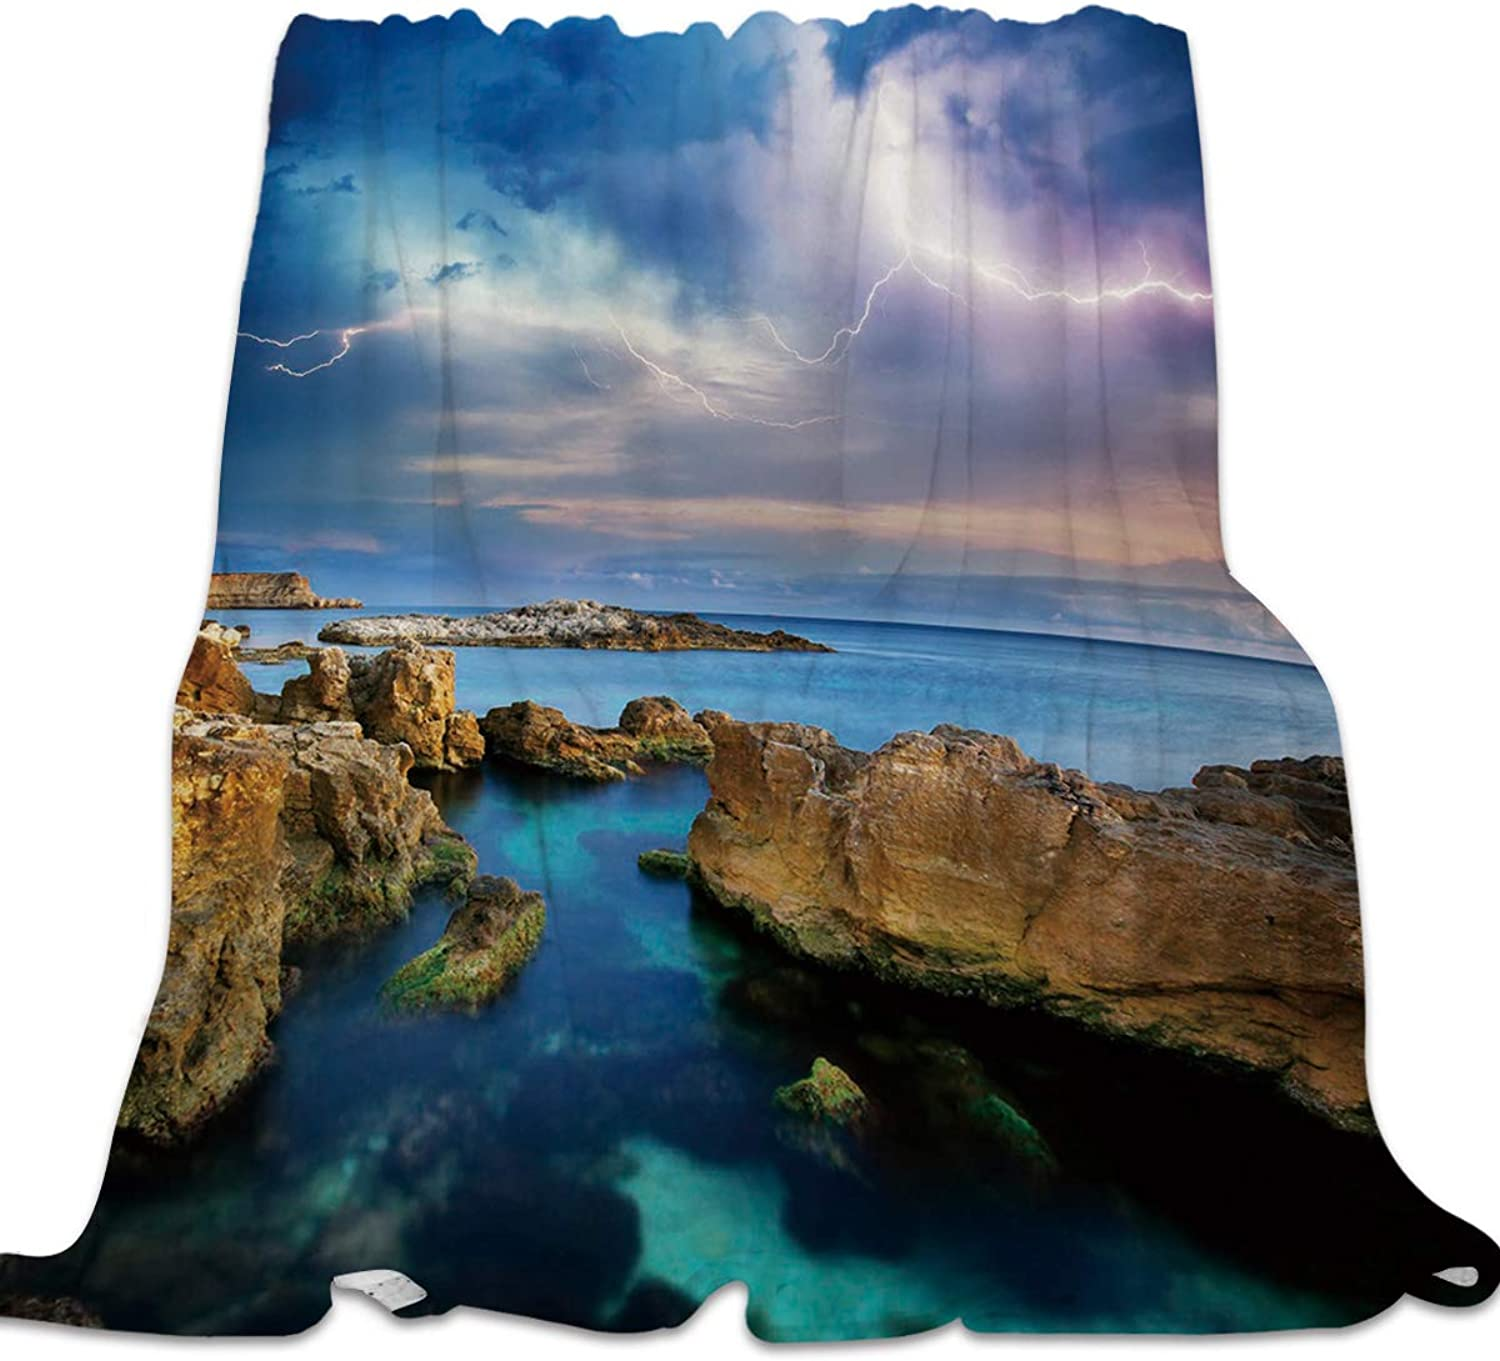 YEHO Art Gallery 39x49 Inch Flannel Fleece Bed Blanket Soft Throw-Blankets for Kids Adult,The Landscape of Beach with Lightning,Lightweight Blankets for Bedroom Living Room Sofa Couch Home Decor